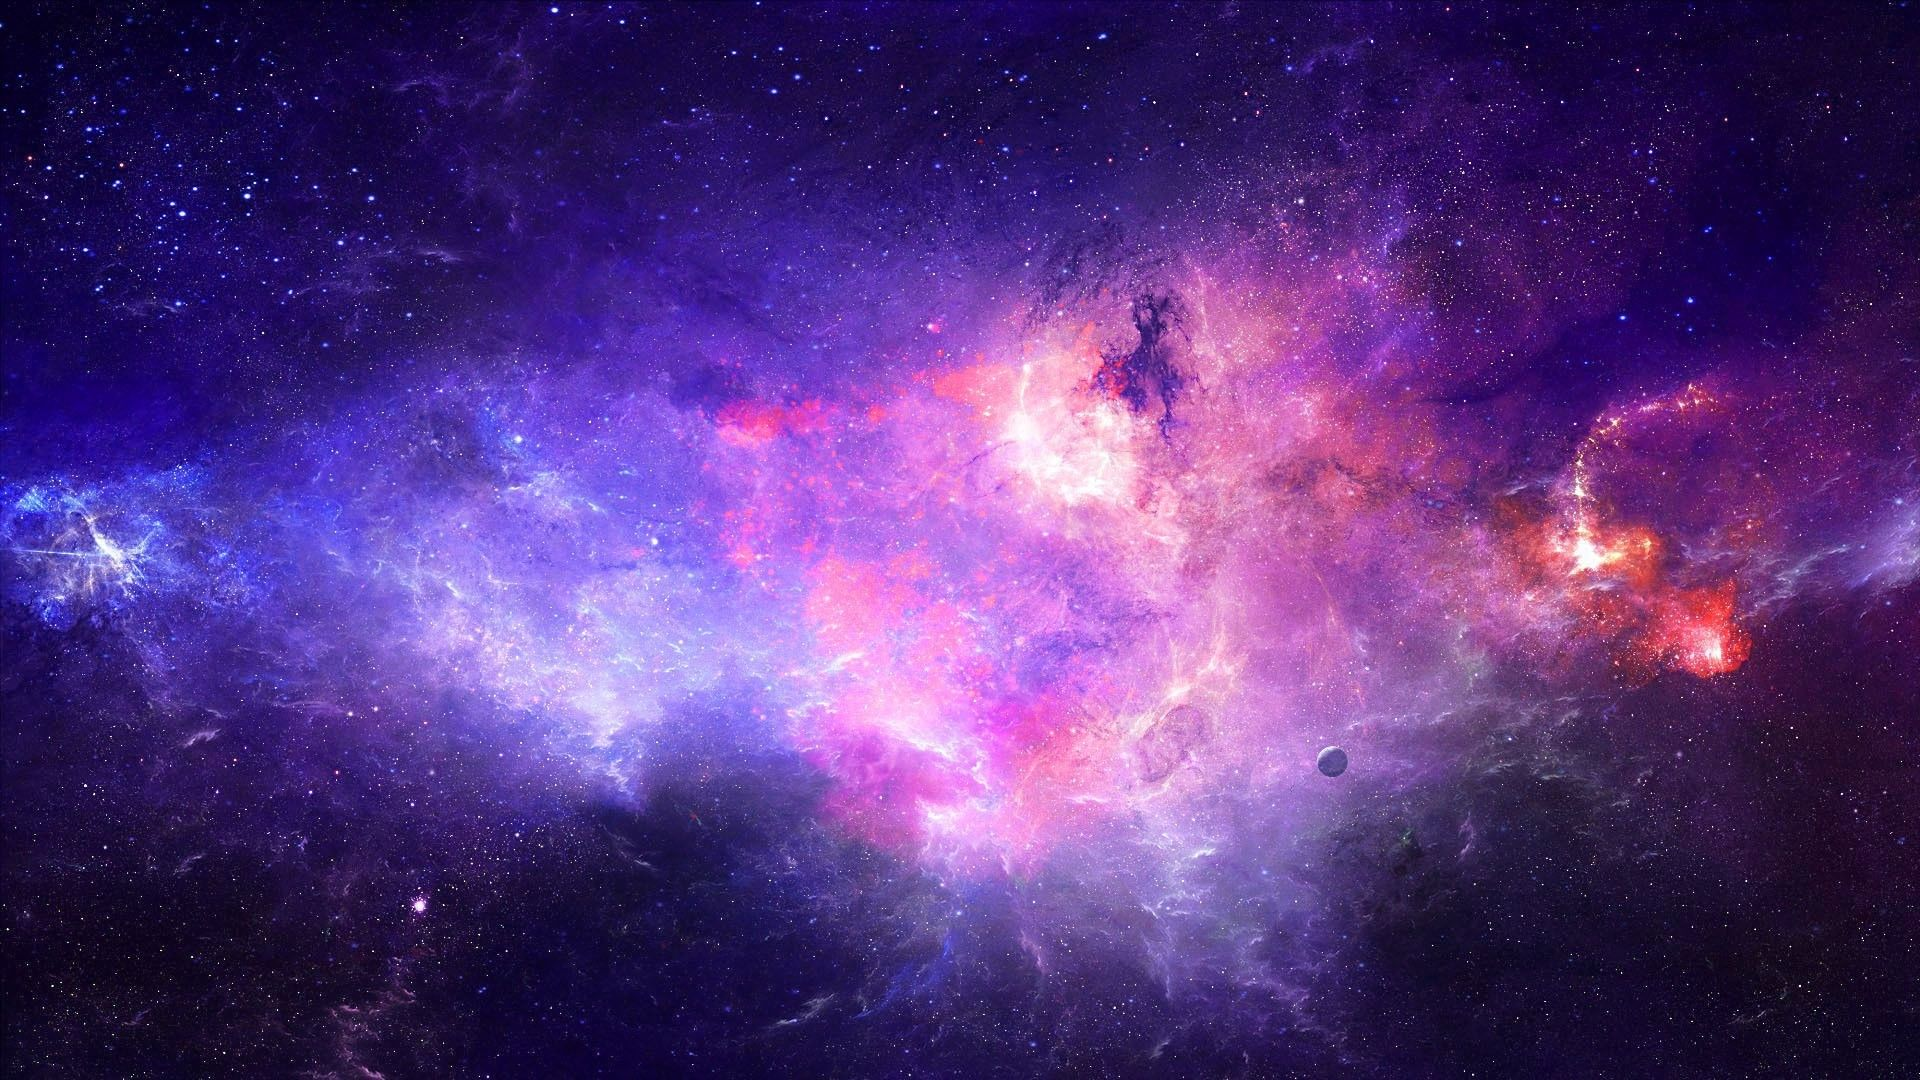 Outer Space Stars Wallpaper Hd Hd 1080p 12 Hd Wallpapers